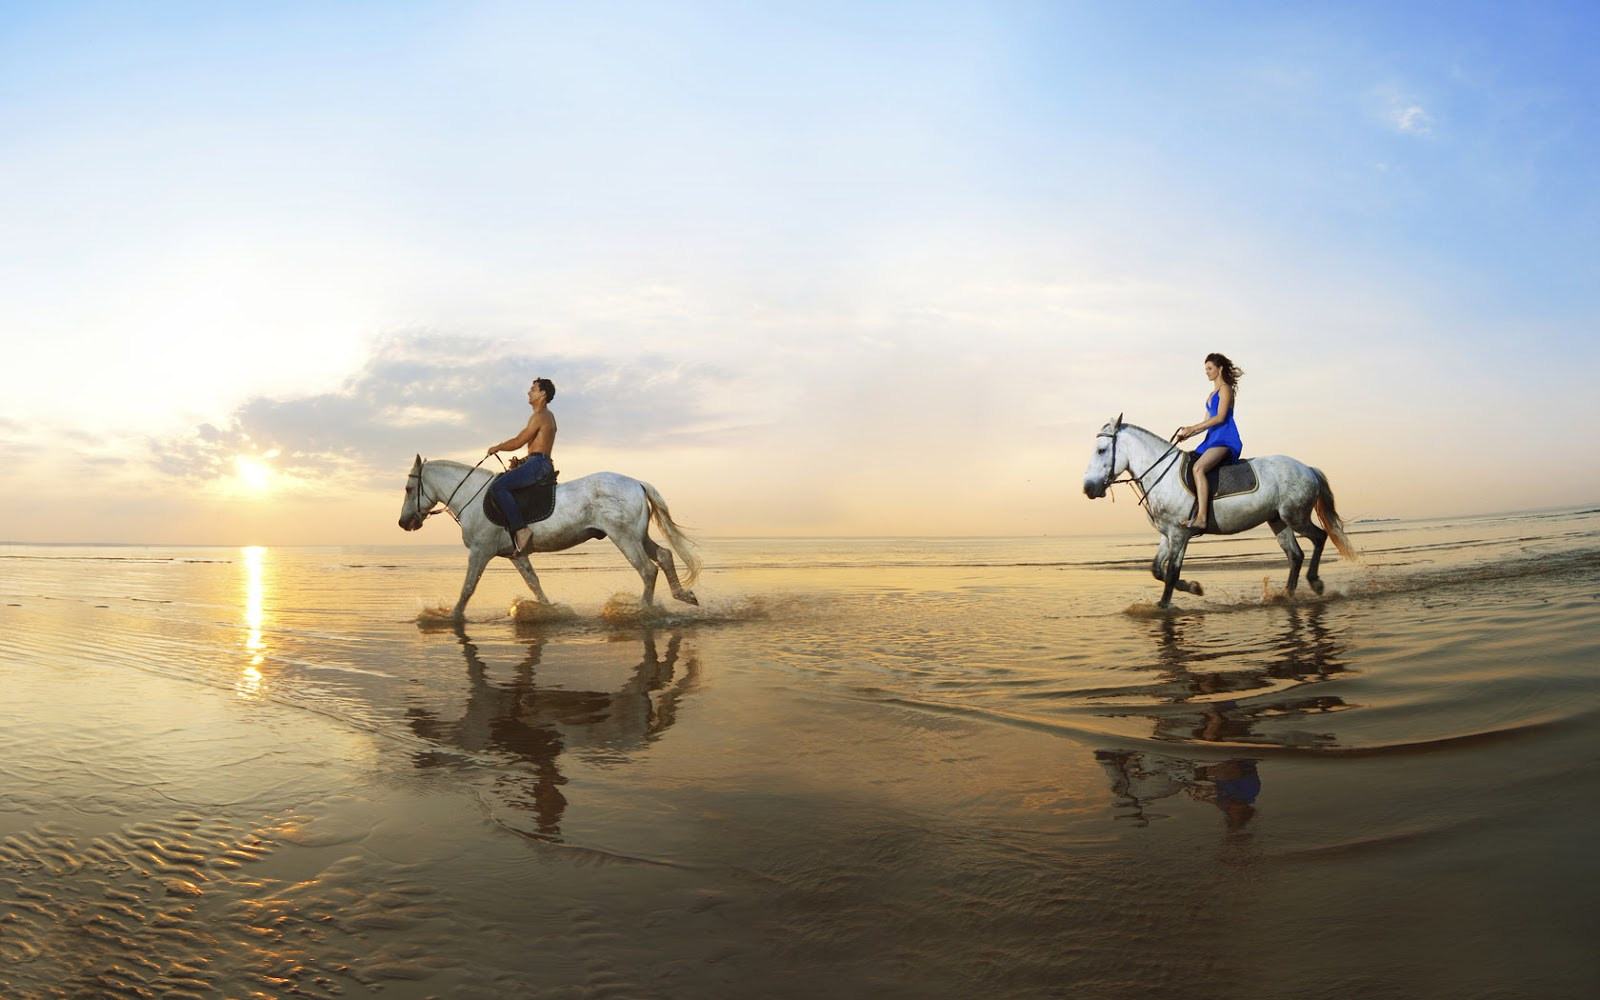 HD horse wallpaper with two people horseback riding on the beach HD 1600x1000